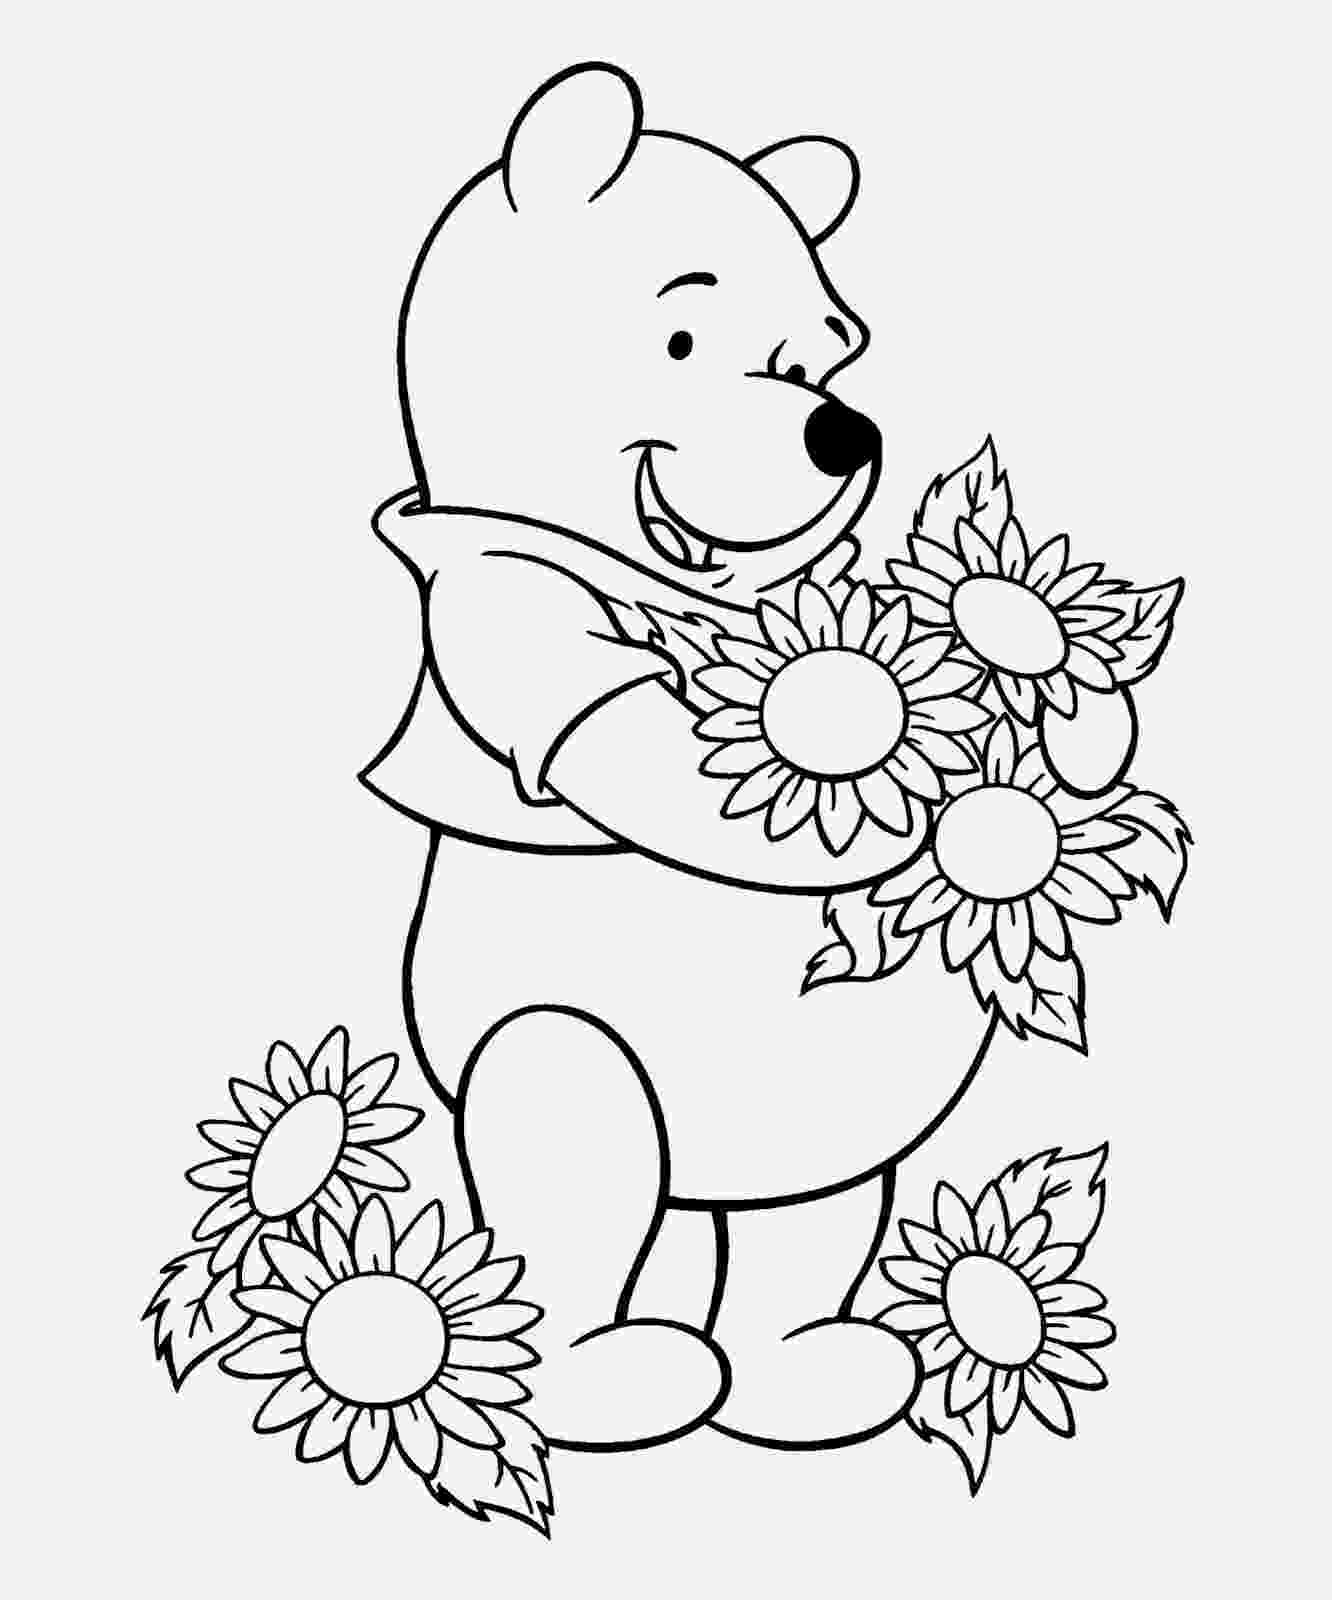 free winnie the pooh coloring sheets coloring pages winnie the pooh kids online world blog free sheets the coloring winnie pooh